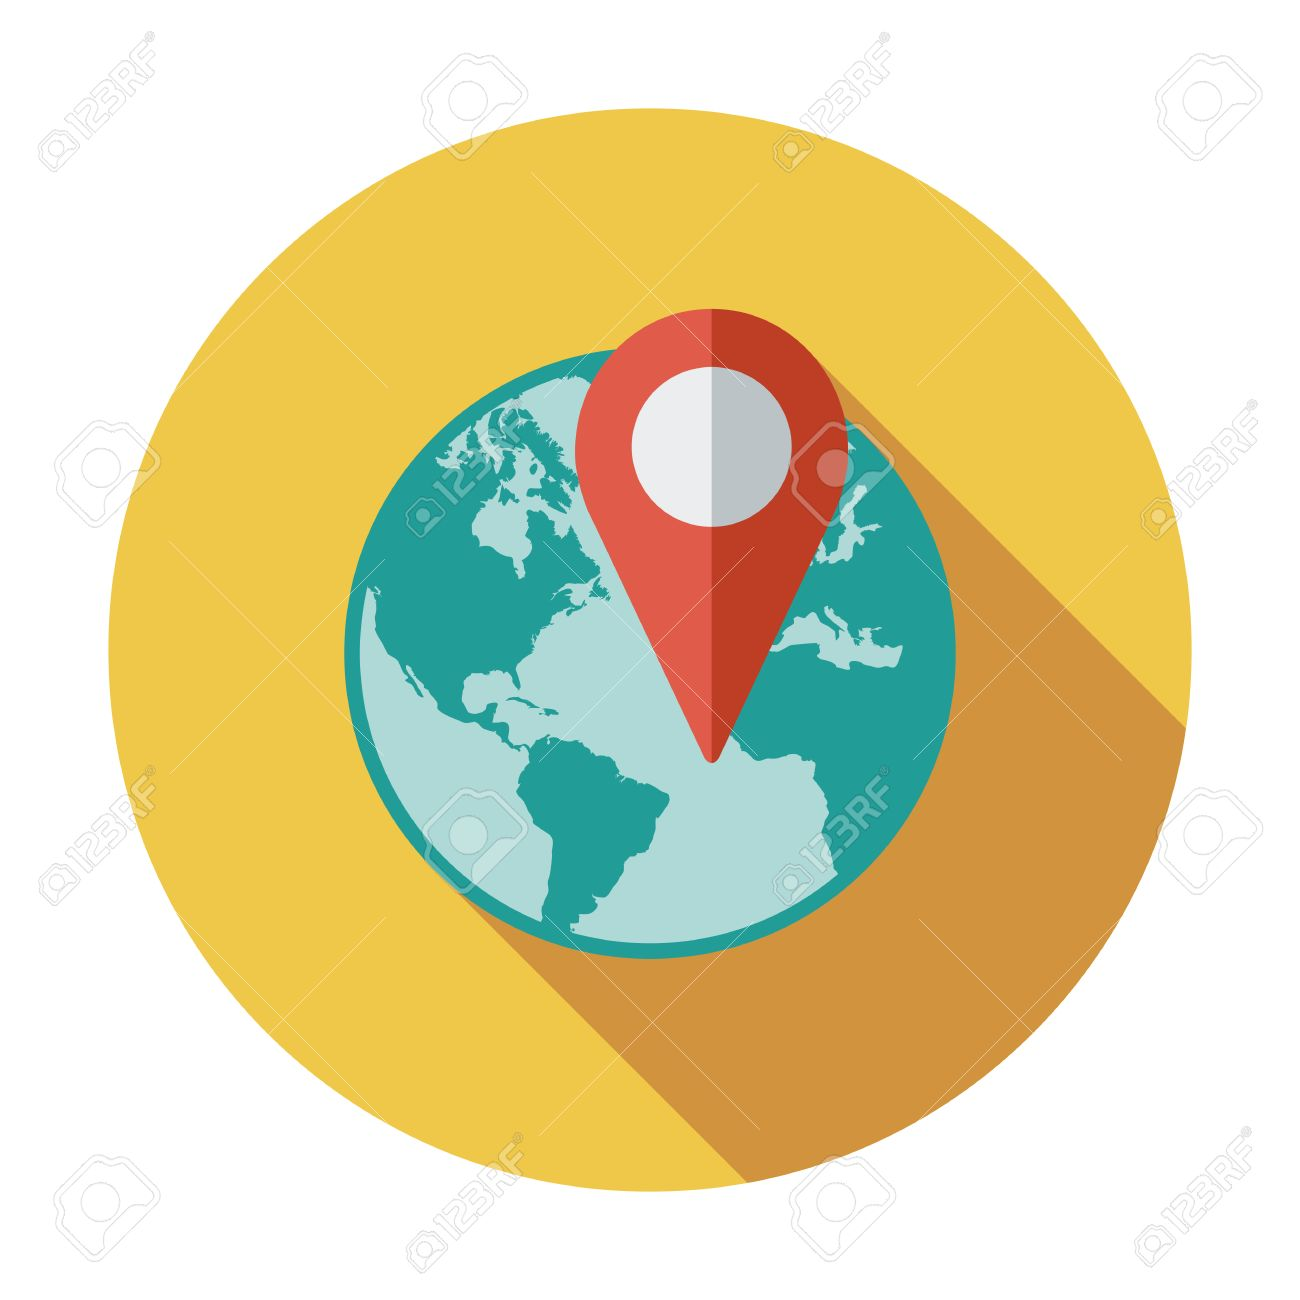 Globe With Pin. Single Flat Color Icon. Vector Illustration.